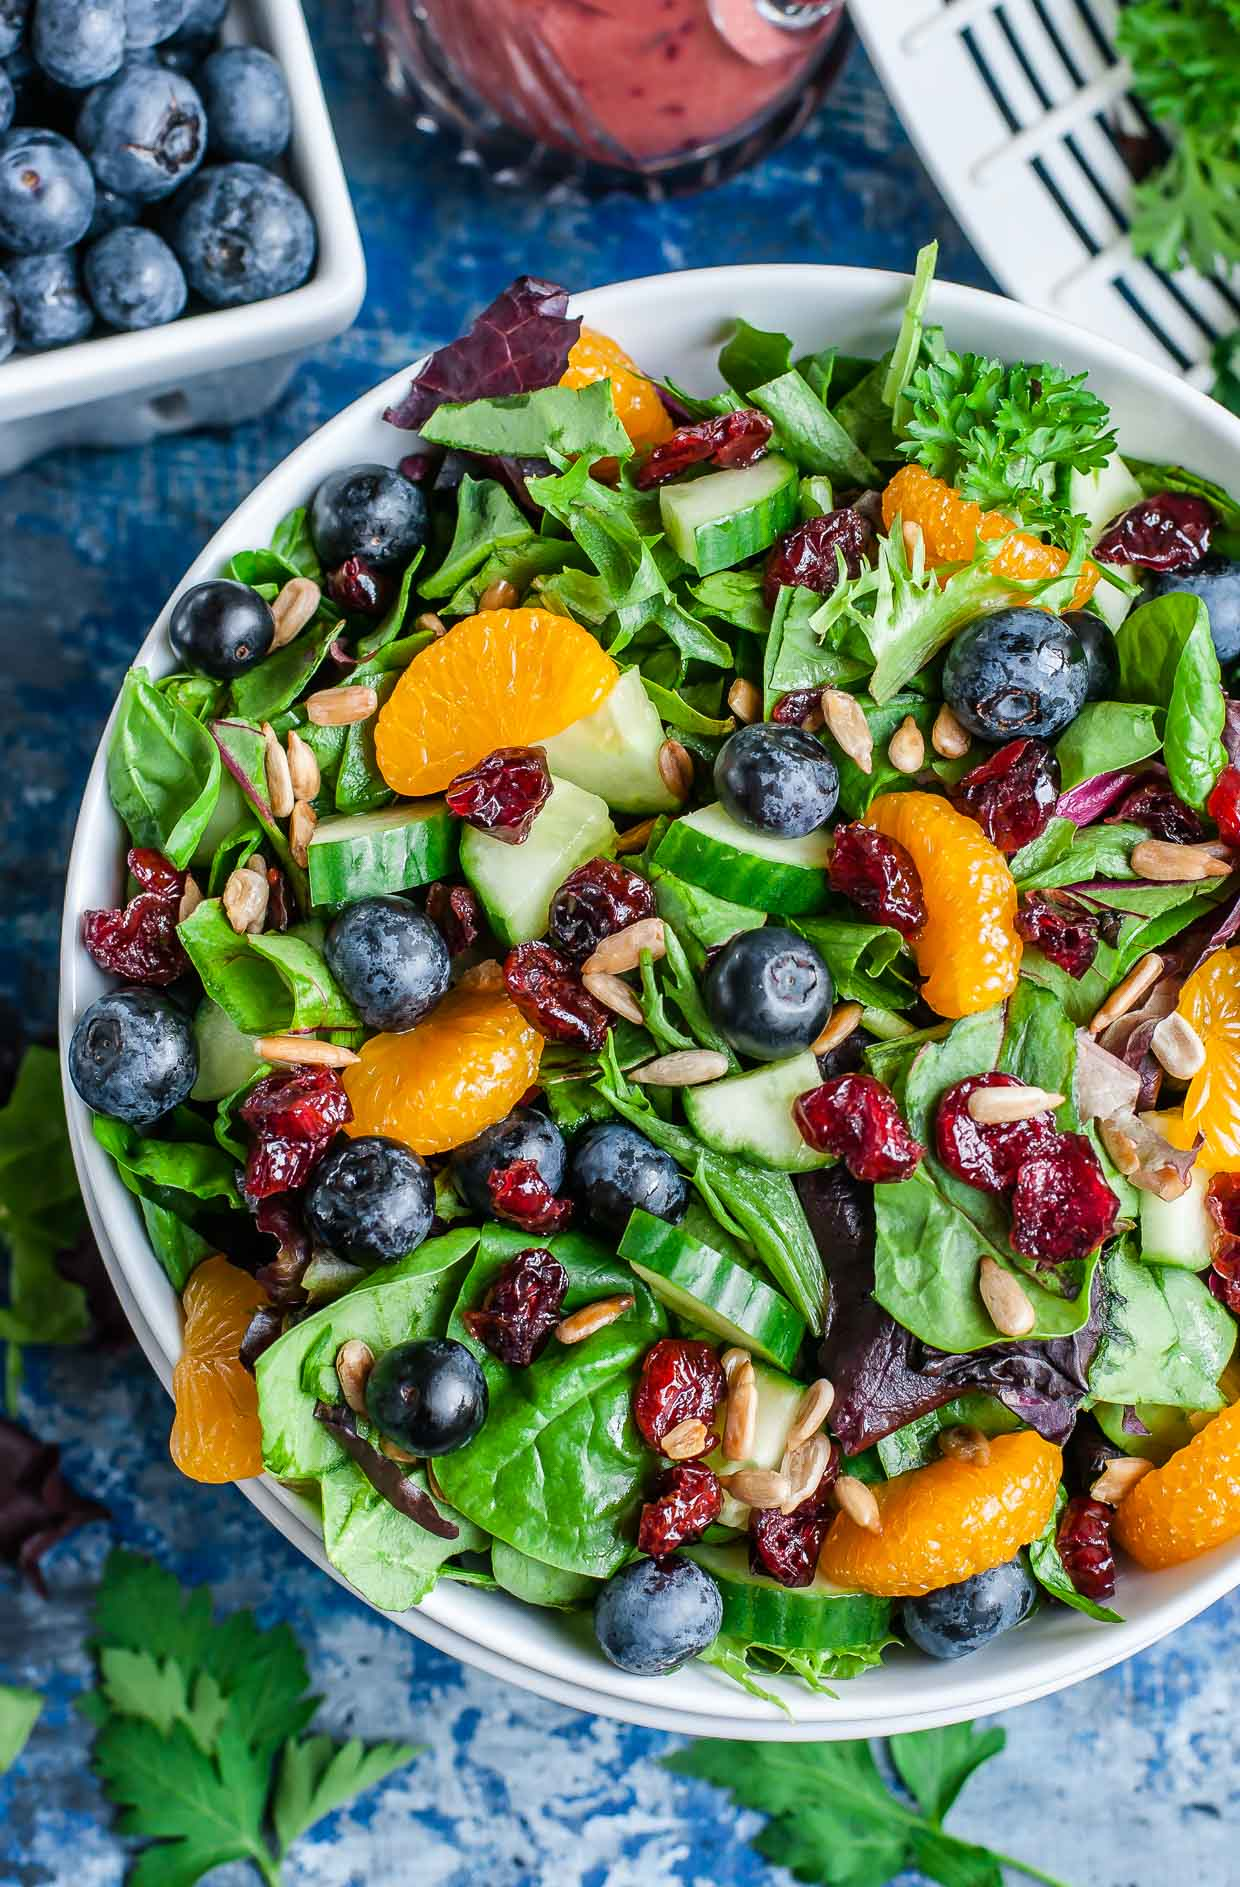 I'm head over heels in LOVE with this healthy Cranberry Blueberry Spring Mix Salad with Blueberry Balsamic Dressing! This scrumptious Summer salad is fun, fruity, and full of flavor!